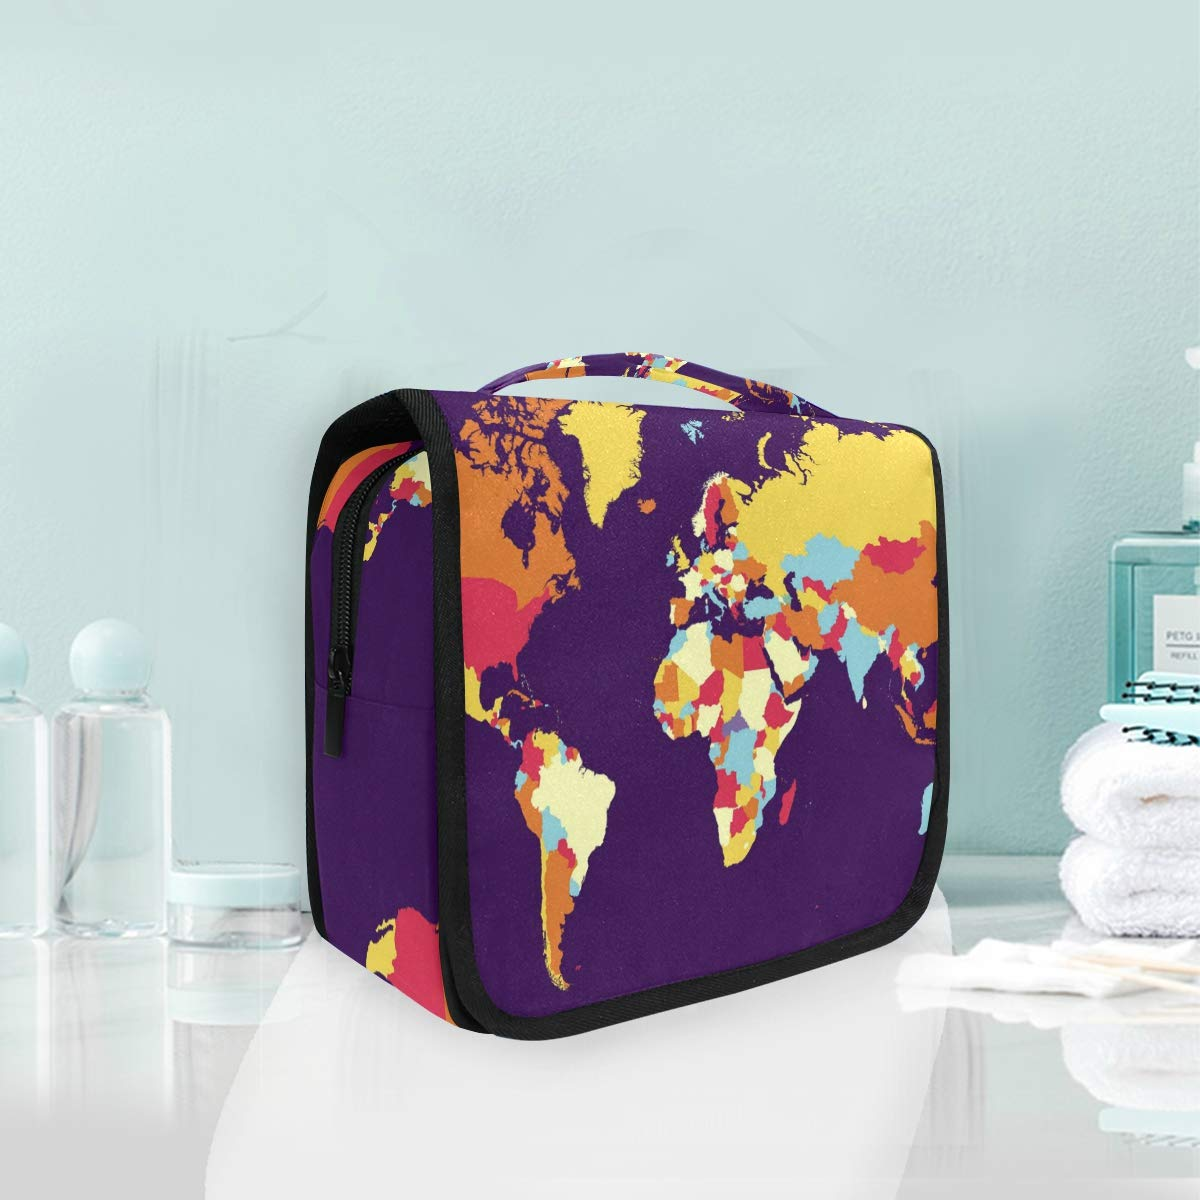 Hanging Toiletry Bag World Map Portable Cosmetic Makeup Travel Organizer for Men & Women with Sturdy Hook